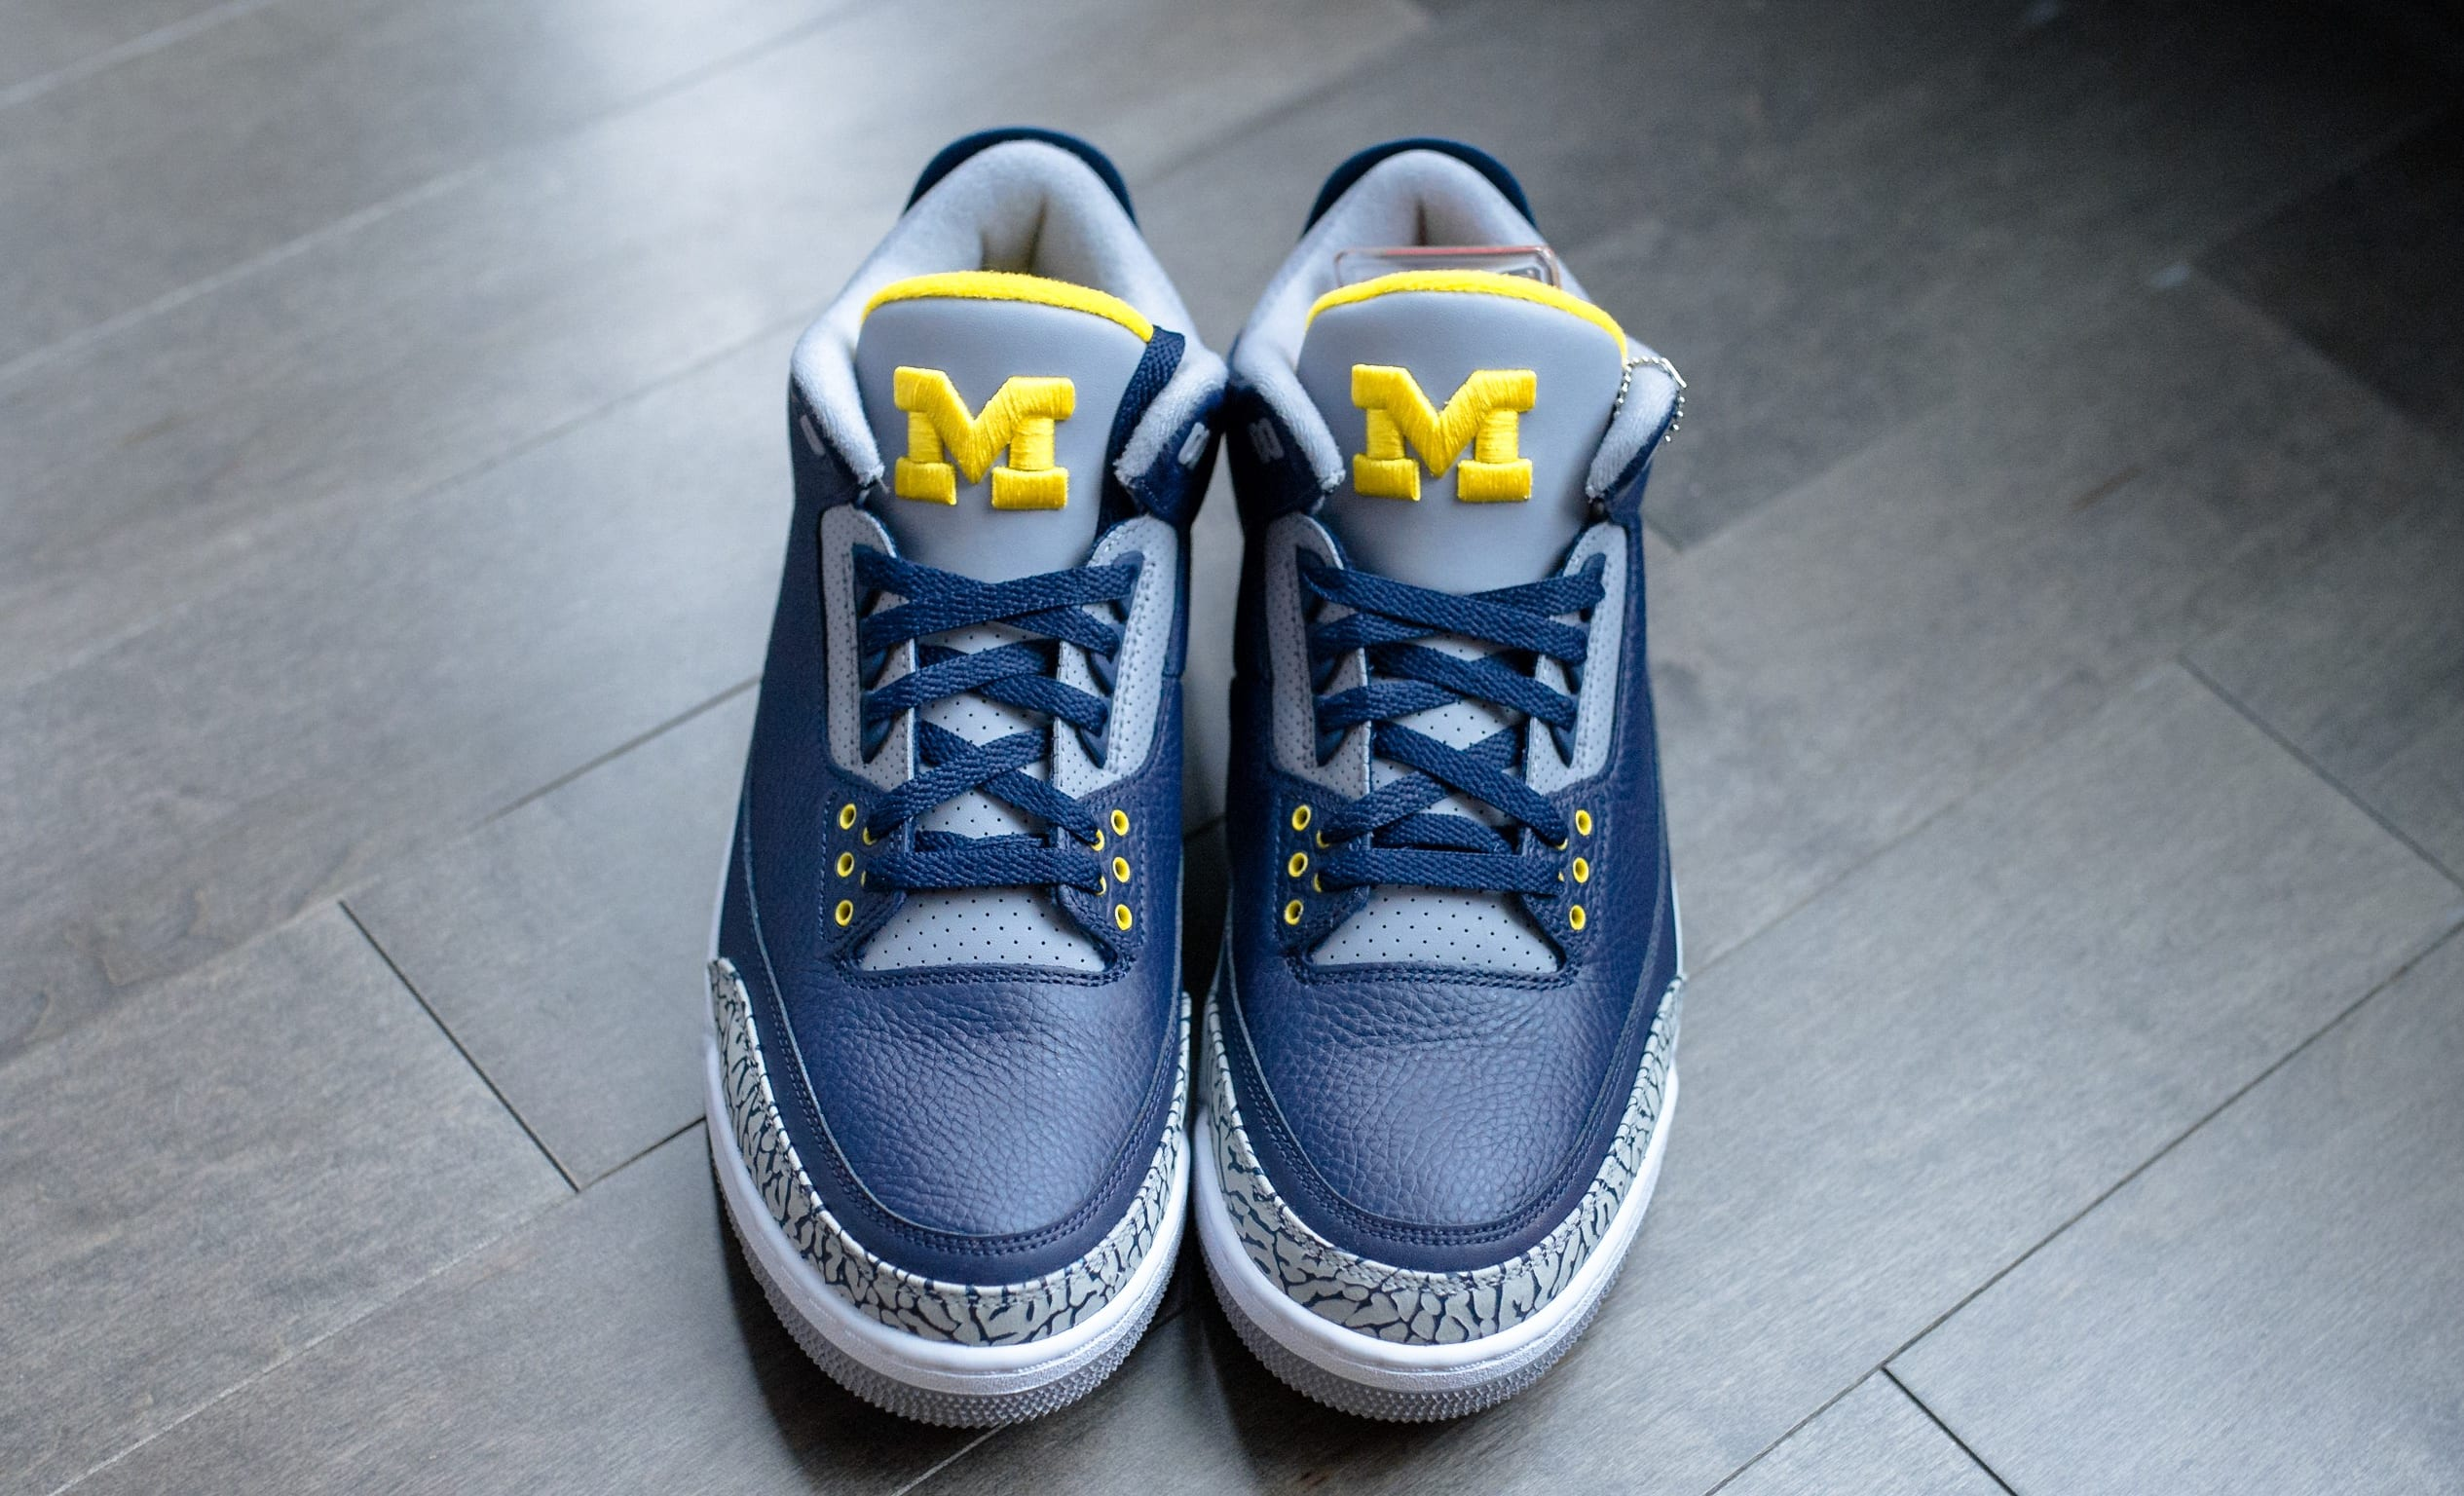 Air Jordan 3 'Michigan' PE (Front)